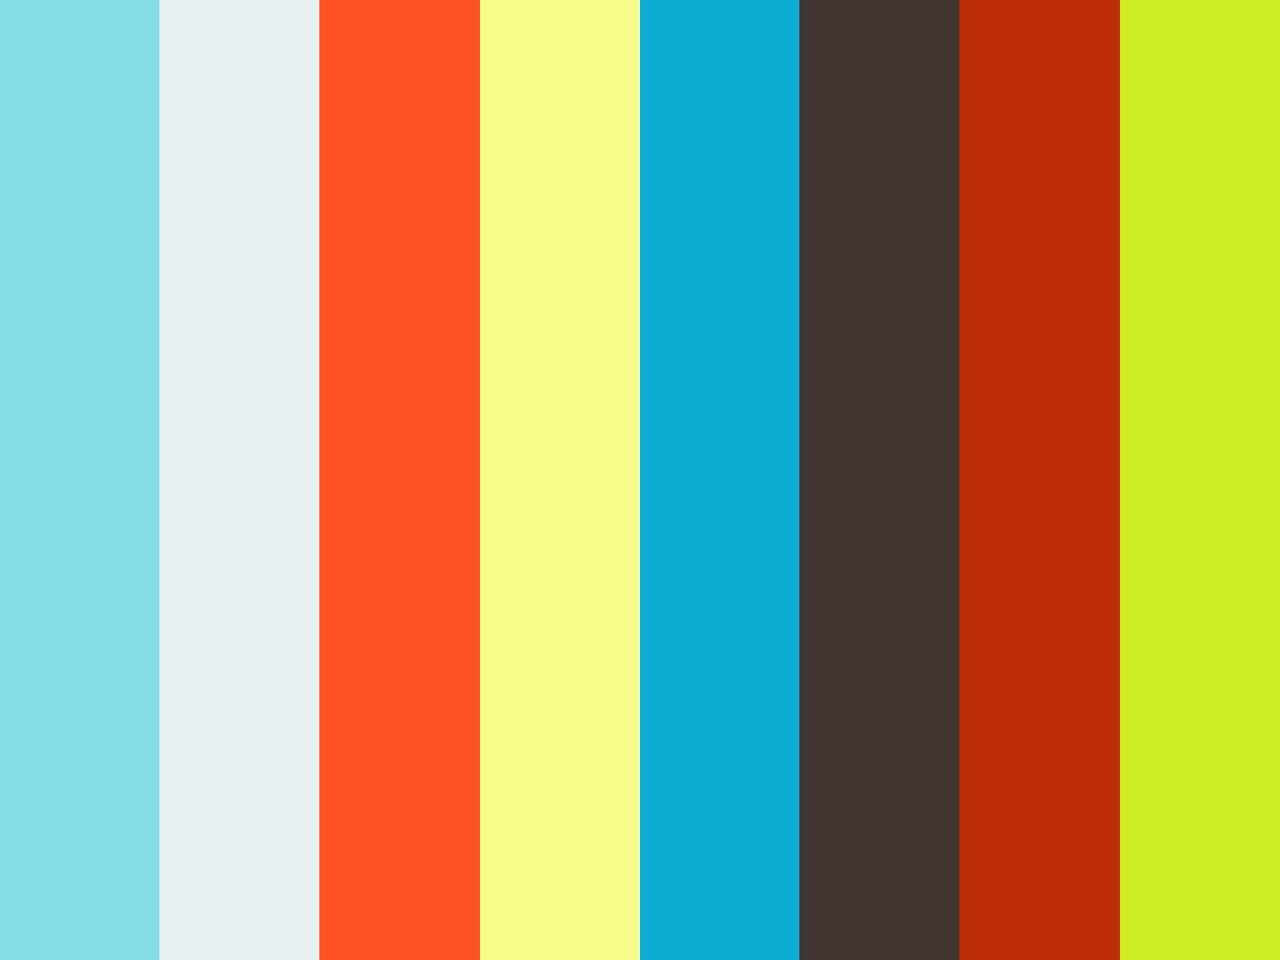 hadoop_mapreduce_tutorial_for_beginners.flv on Vimeo